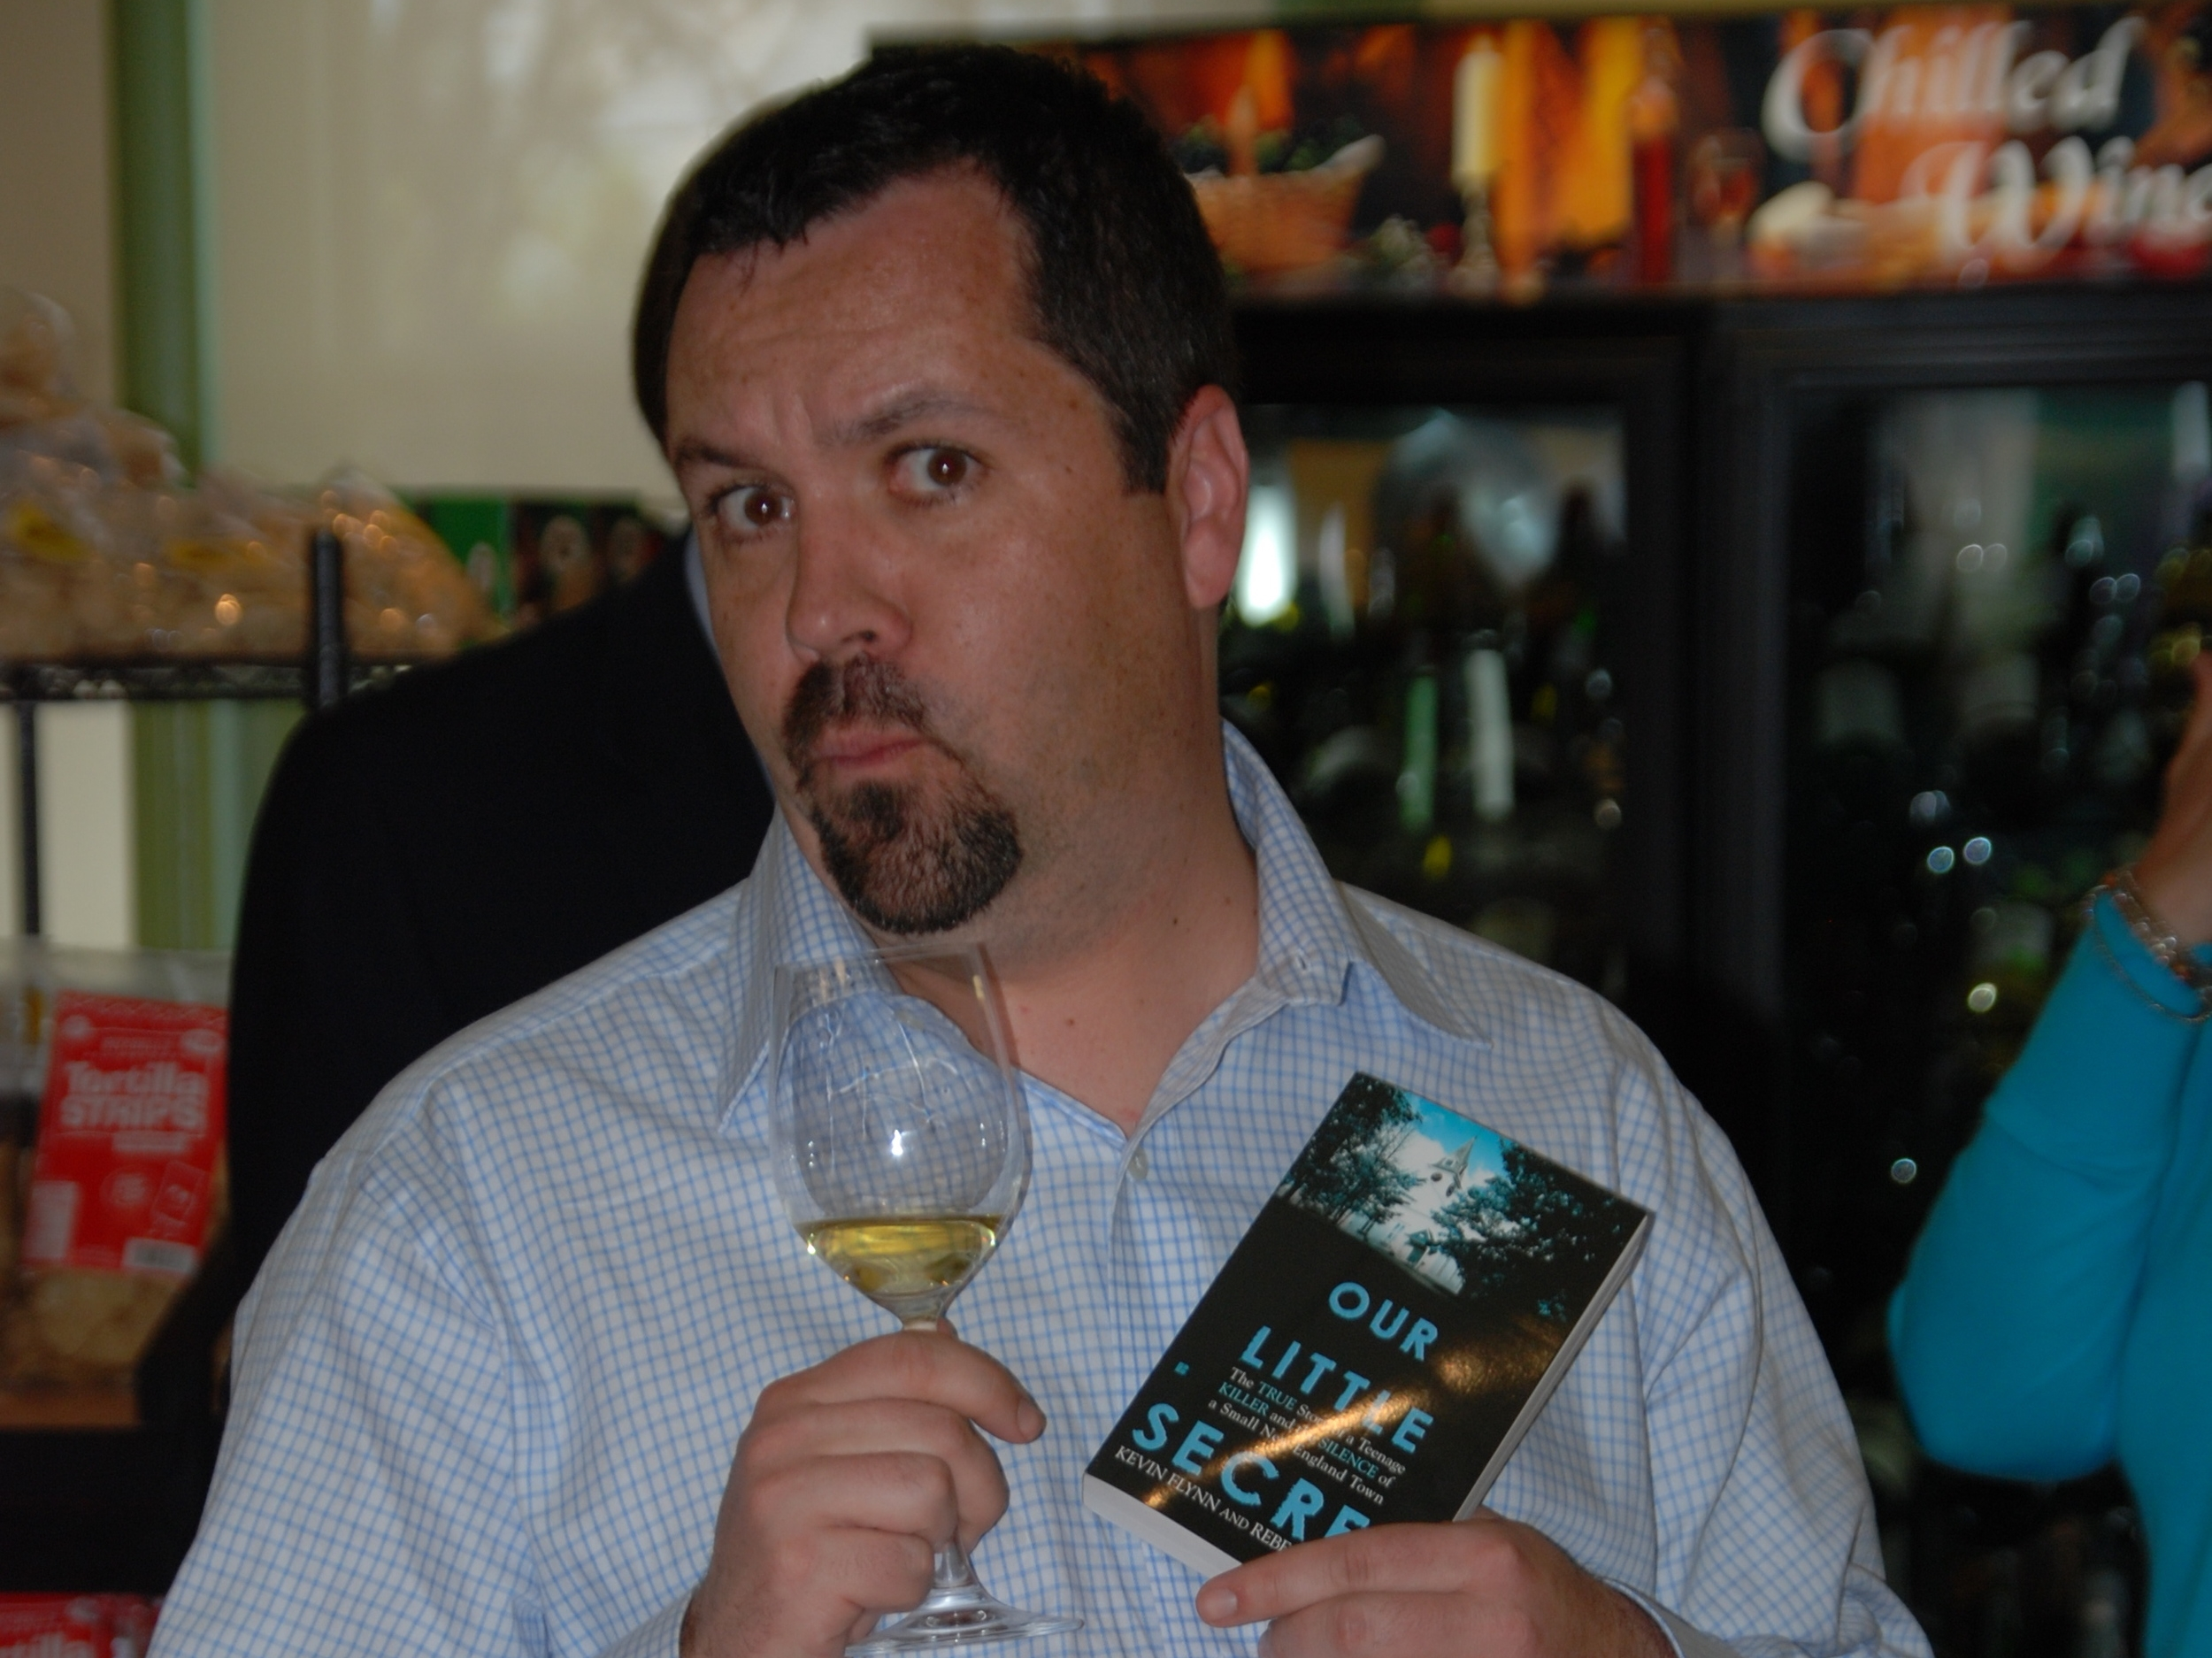 Kevin have wine and cheese at the launch party for  Our Little Secret .  Despite what you might think, white wine is a better pairing for true crime.